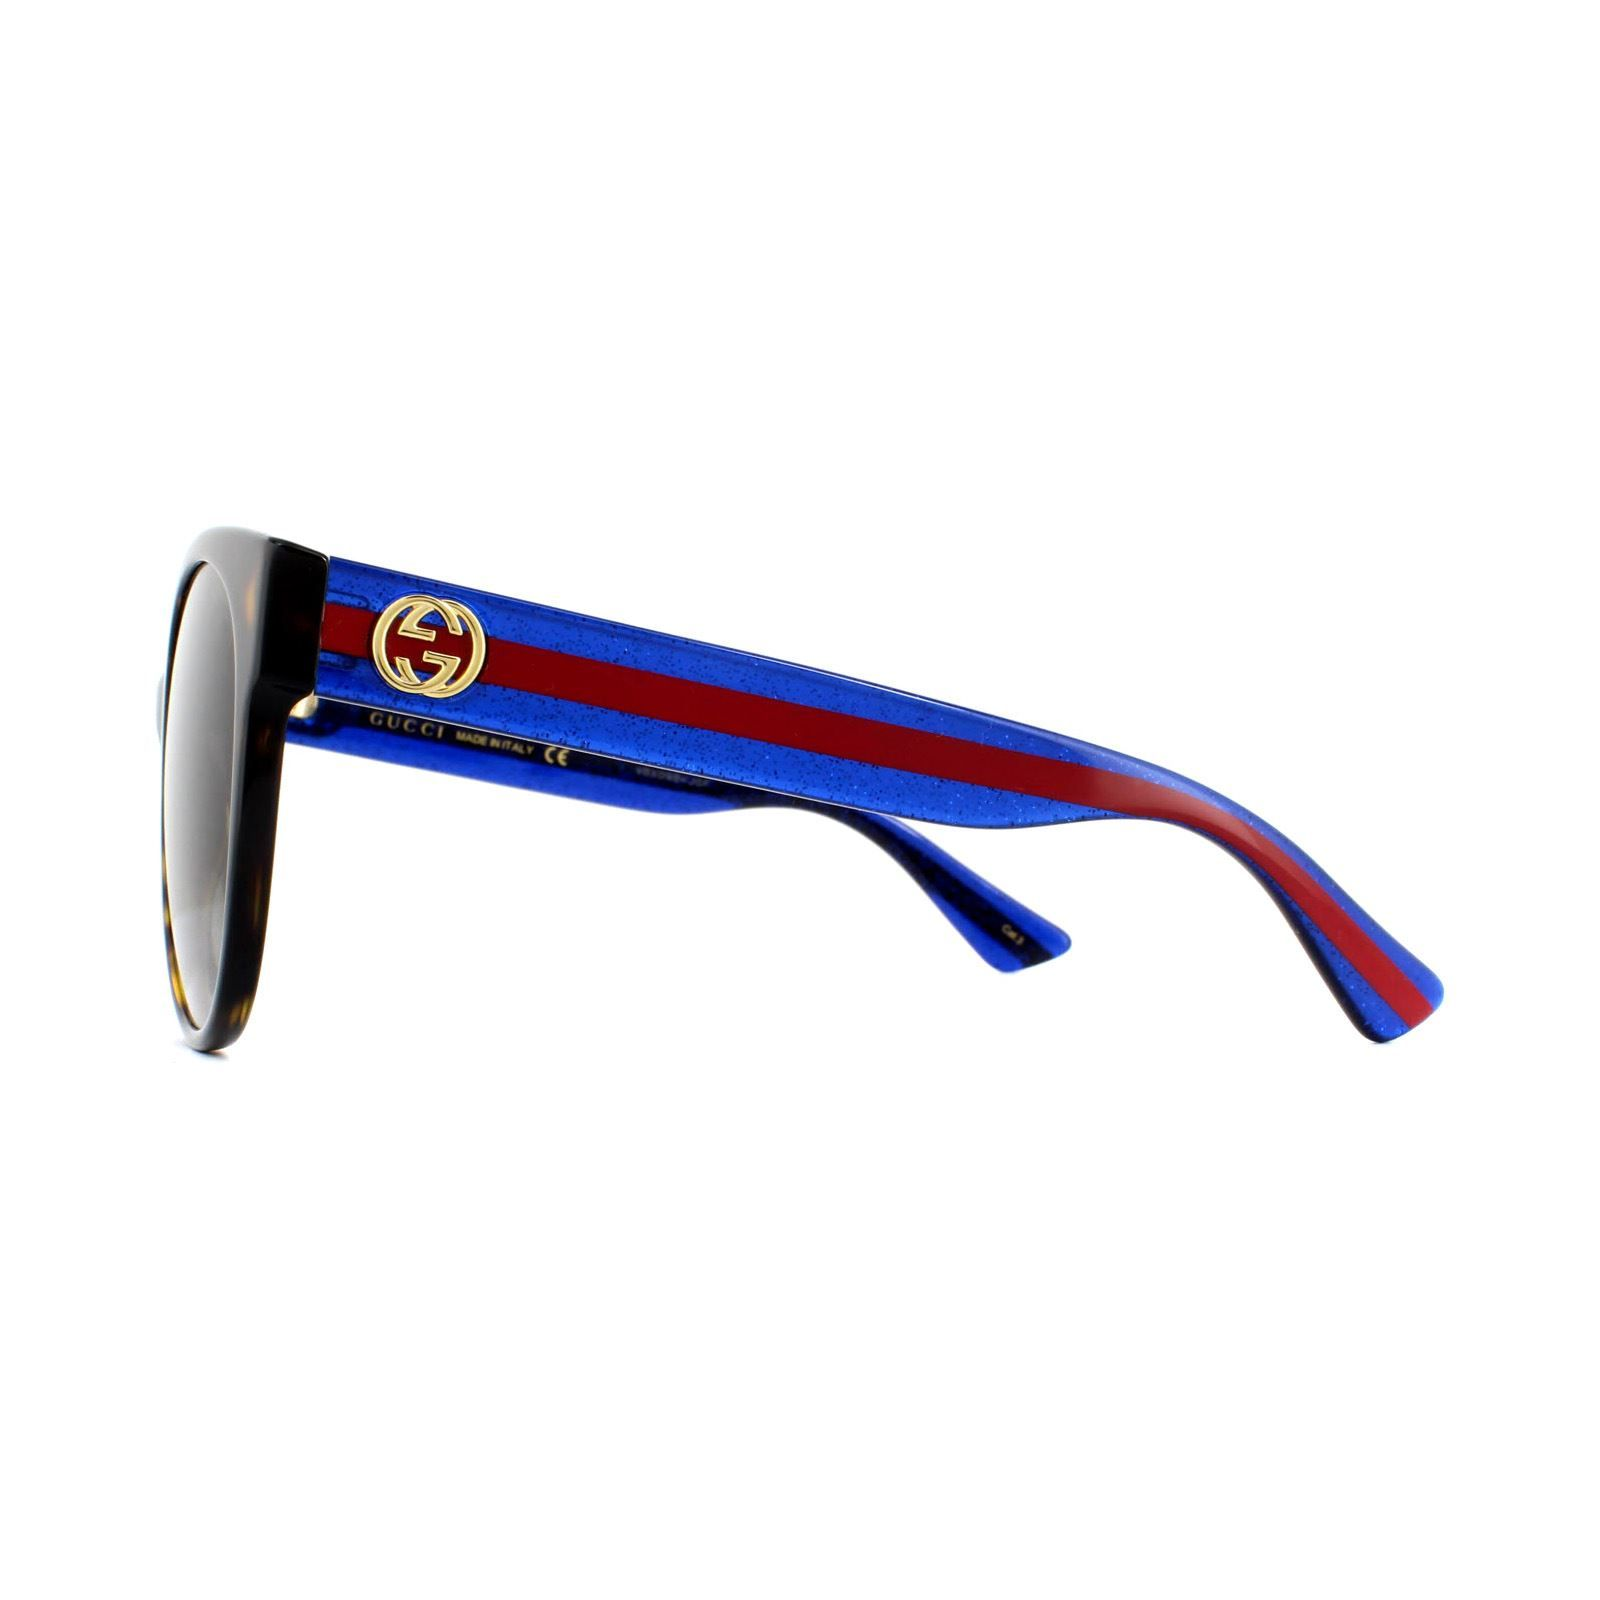 Gucci Sunglasses GG0035S 004 Havana Glitter Blue and Red Brown